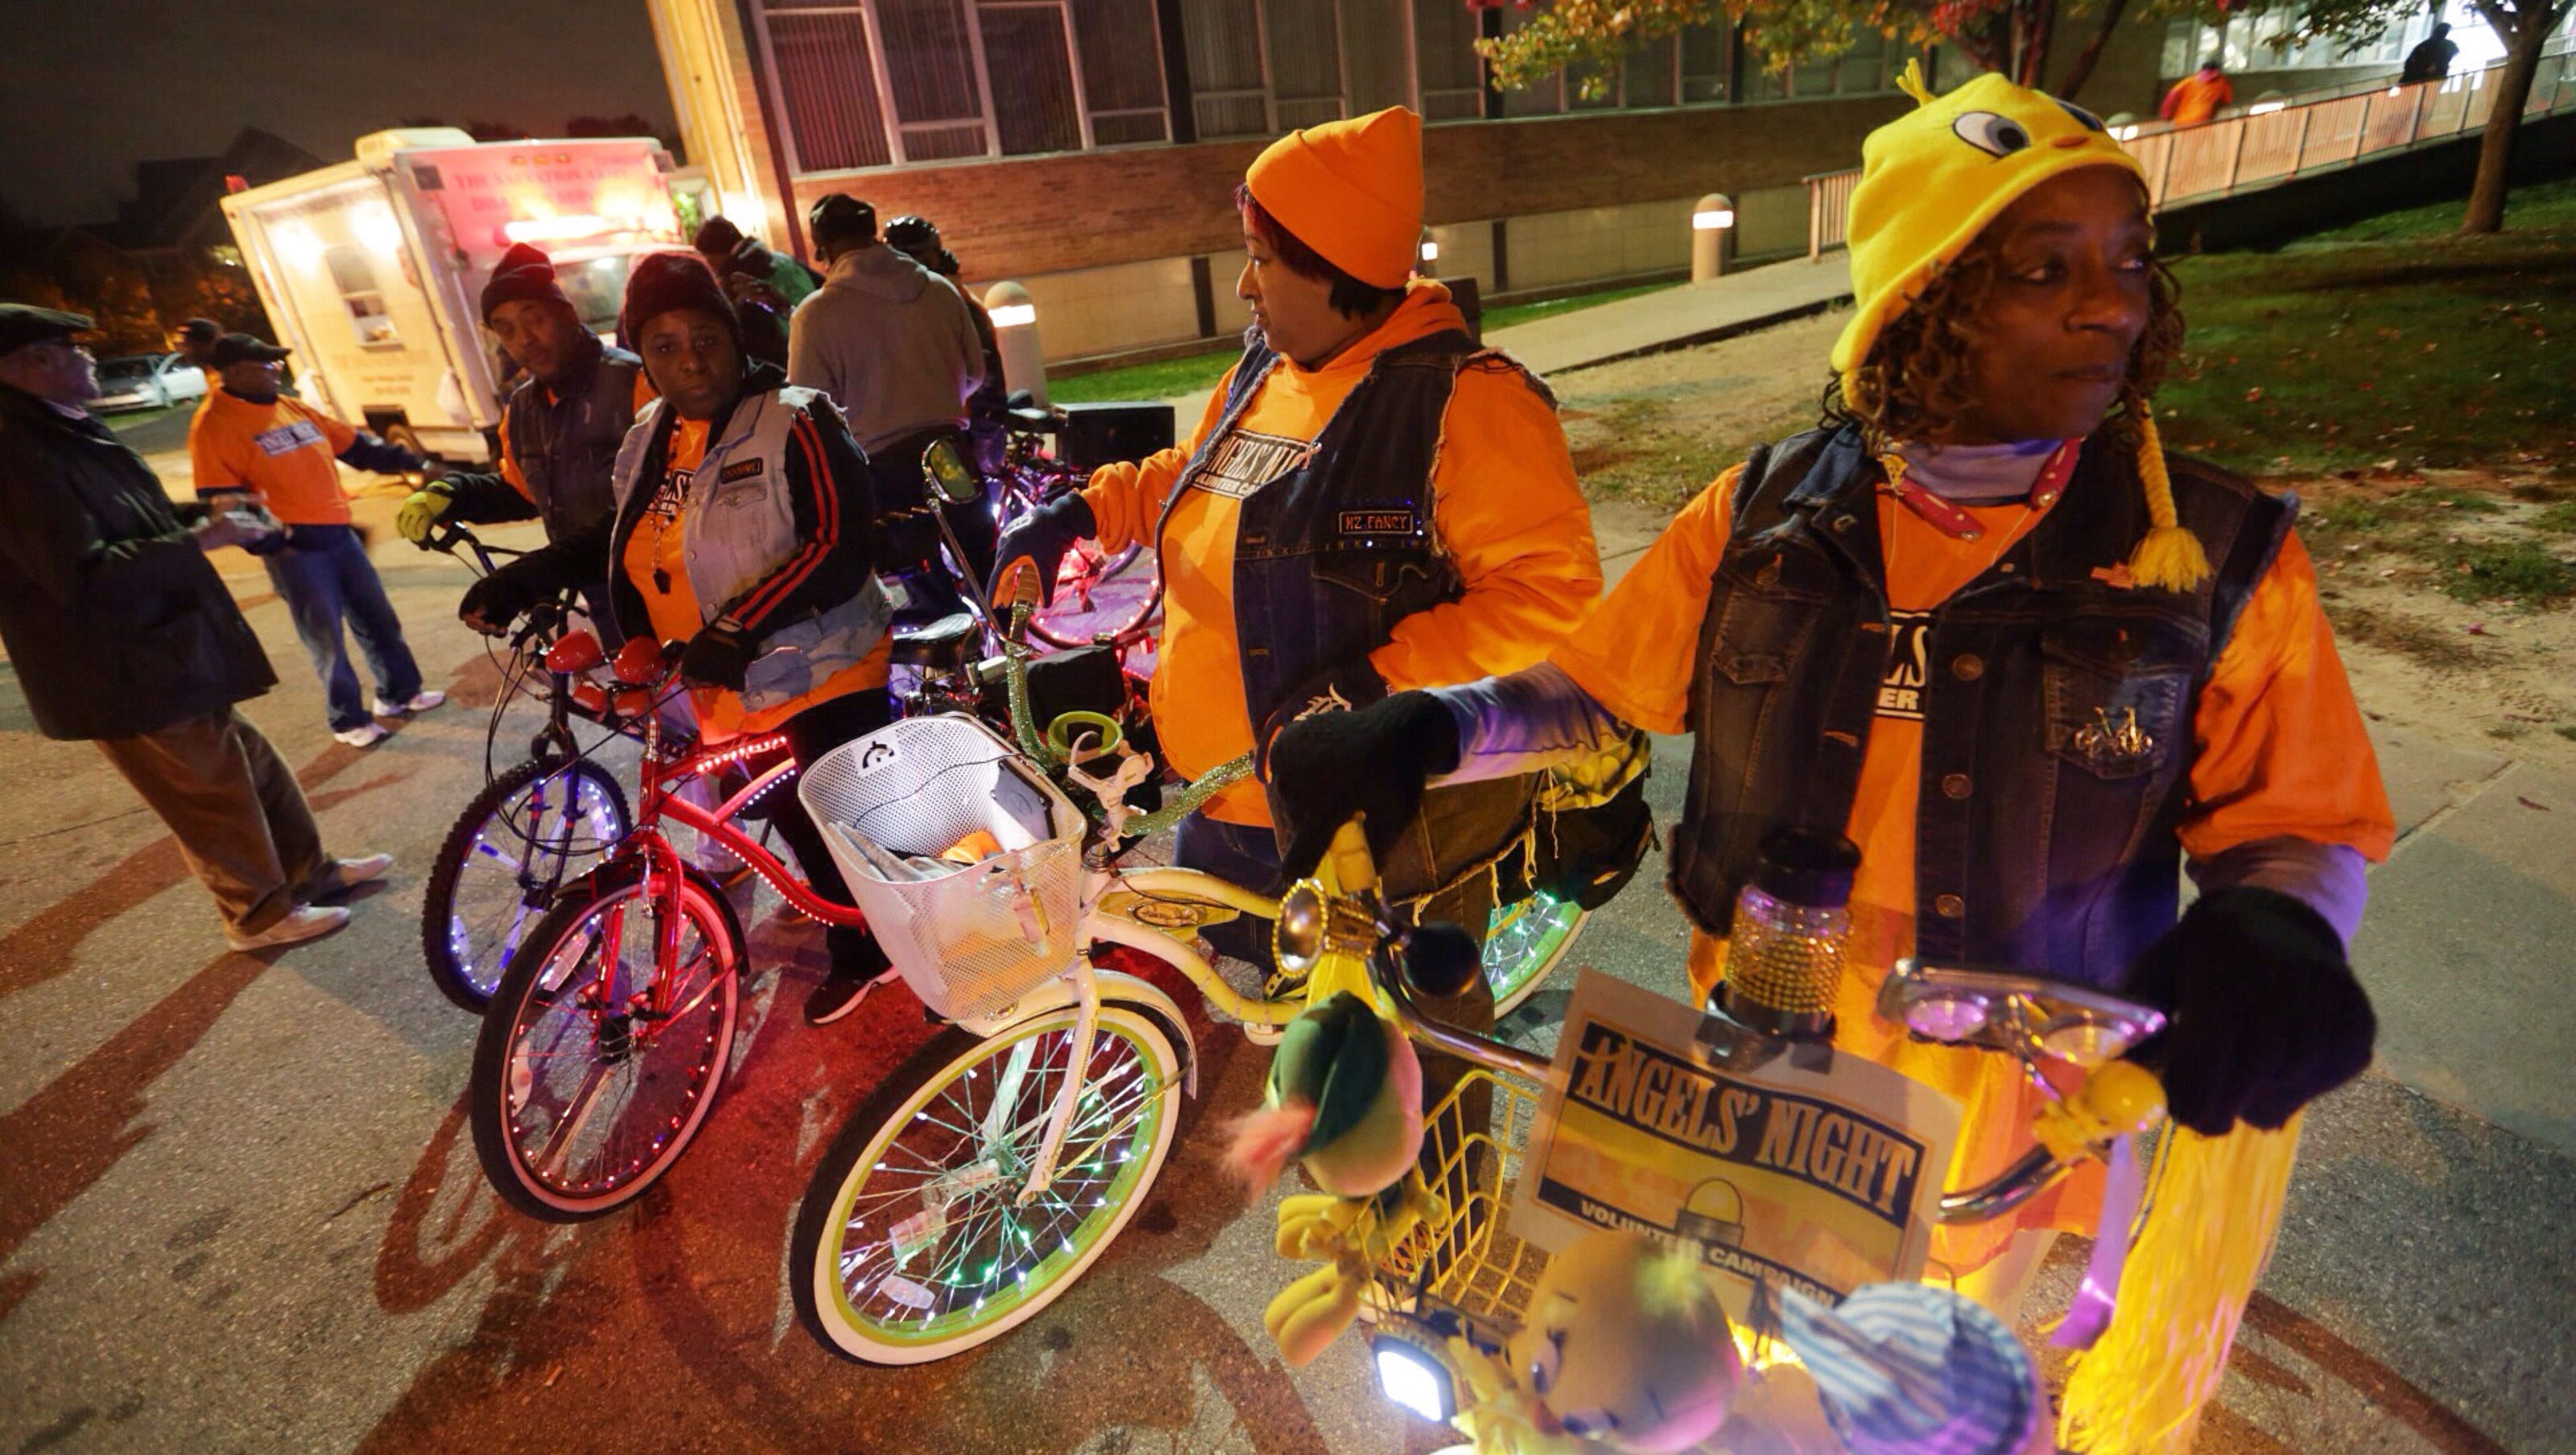 halloween in the d' event replaces angels' night